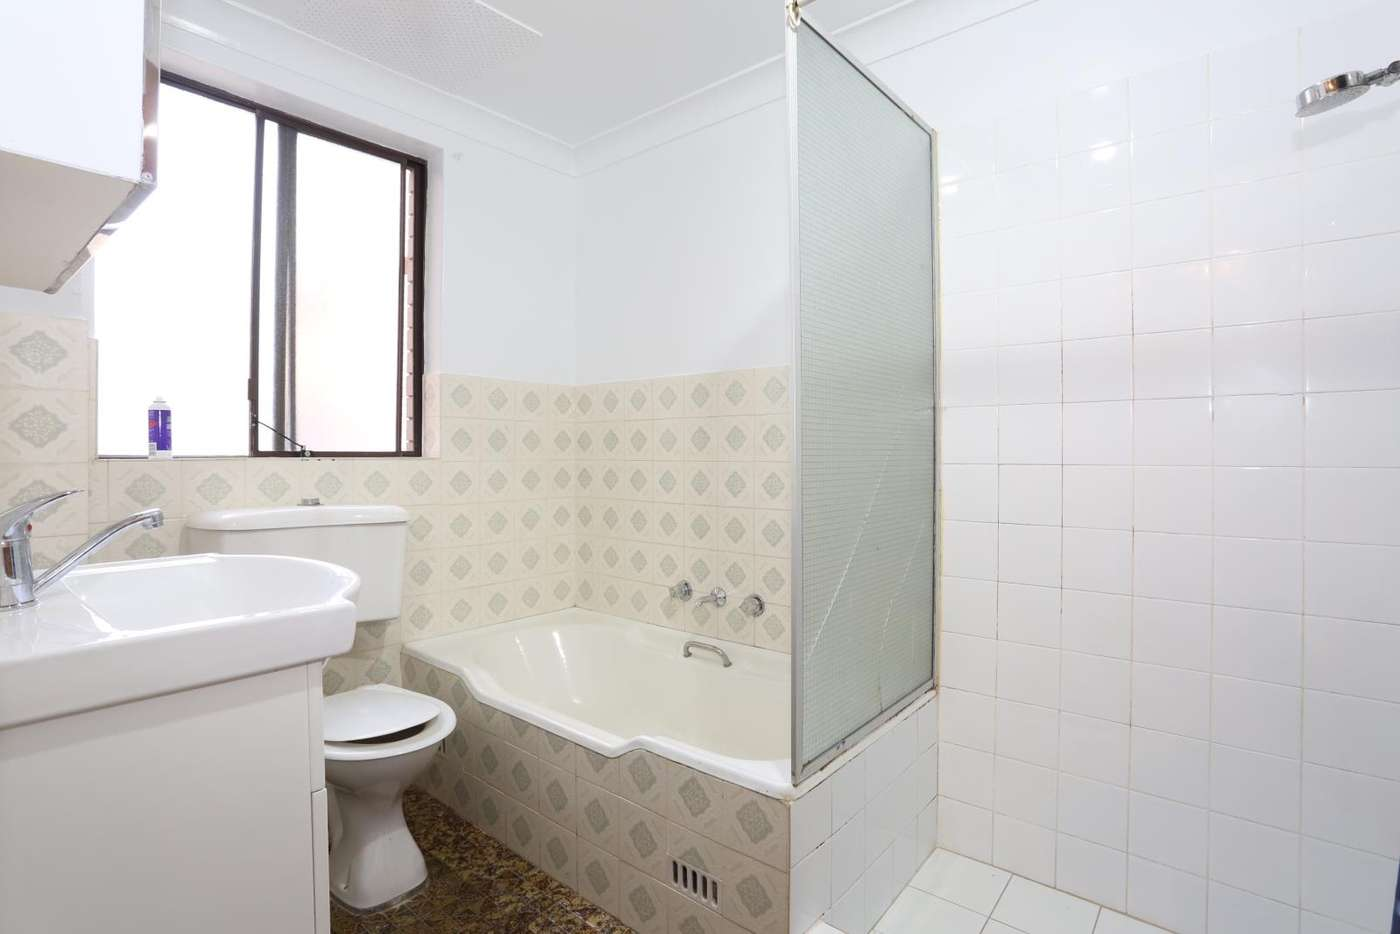 Sixth view of Homely unit listing, 3/13-19 Railway Street, Kogarah NSW 2217